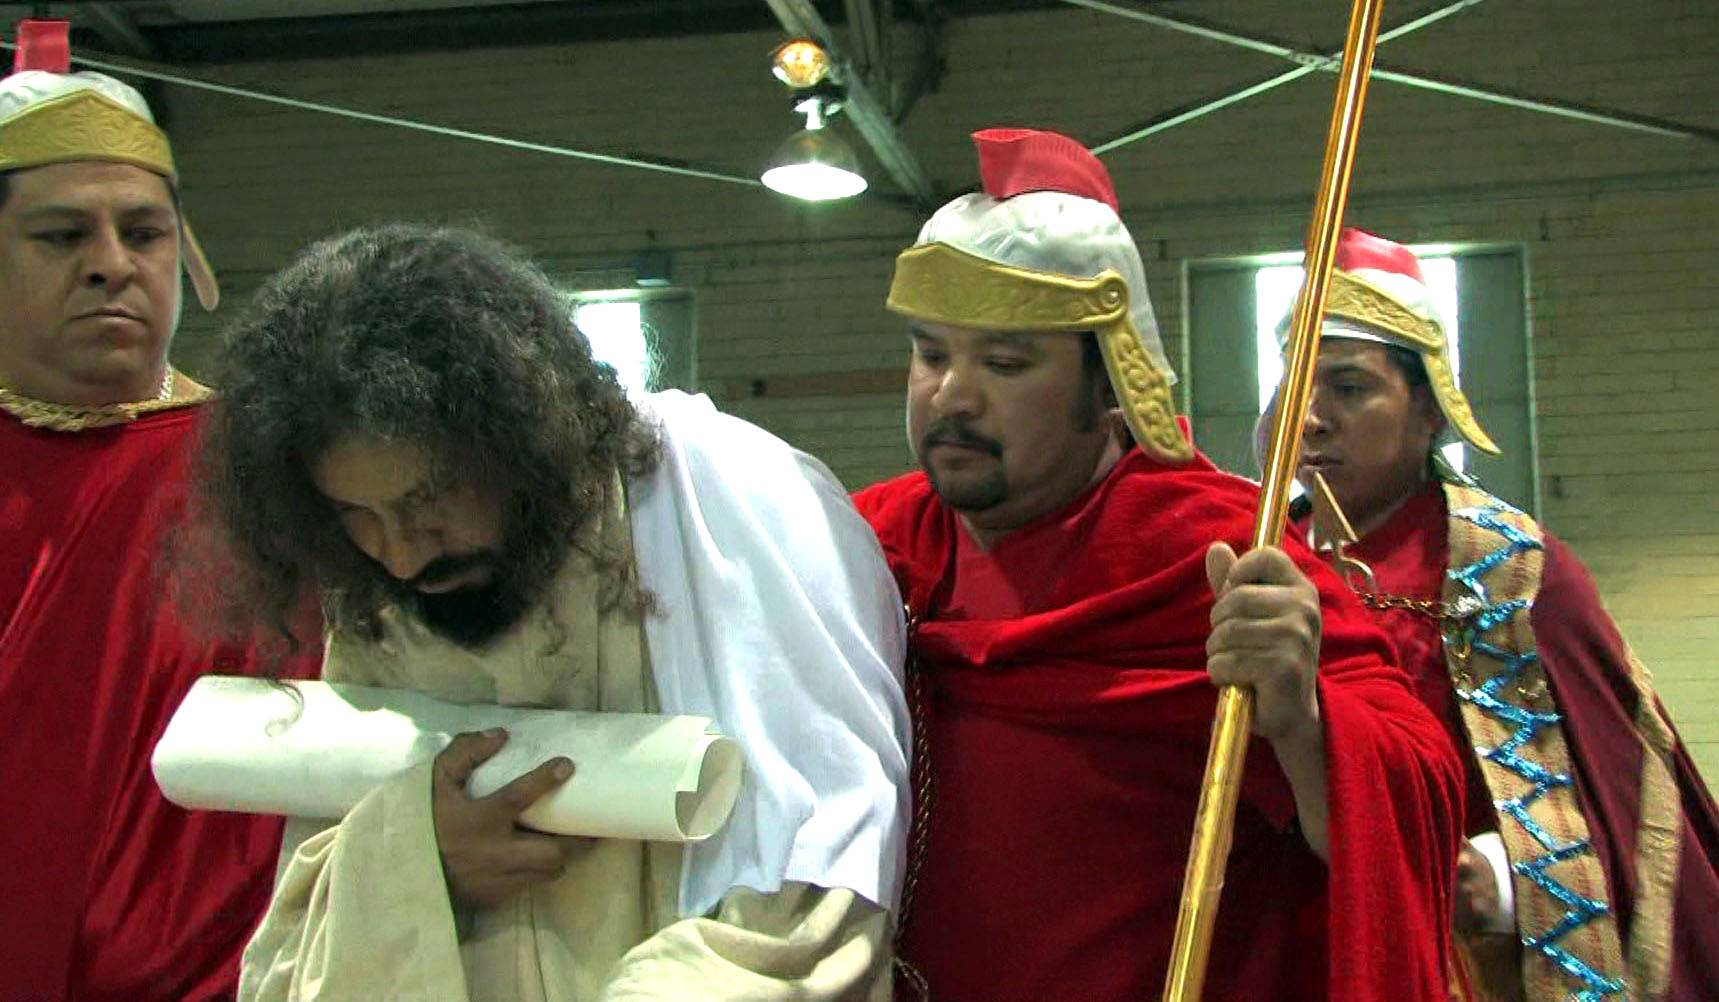 Alvarado portrays Jesus as Roman soldiers keep a close eye on him during Via Crucis, The Way of the Cross.